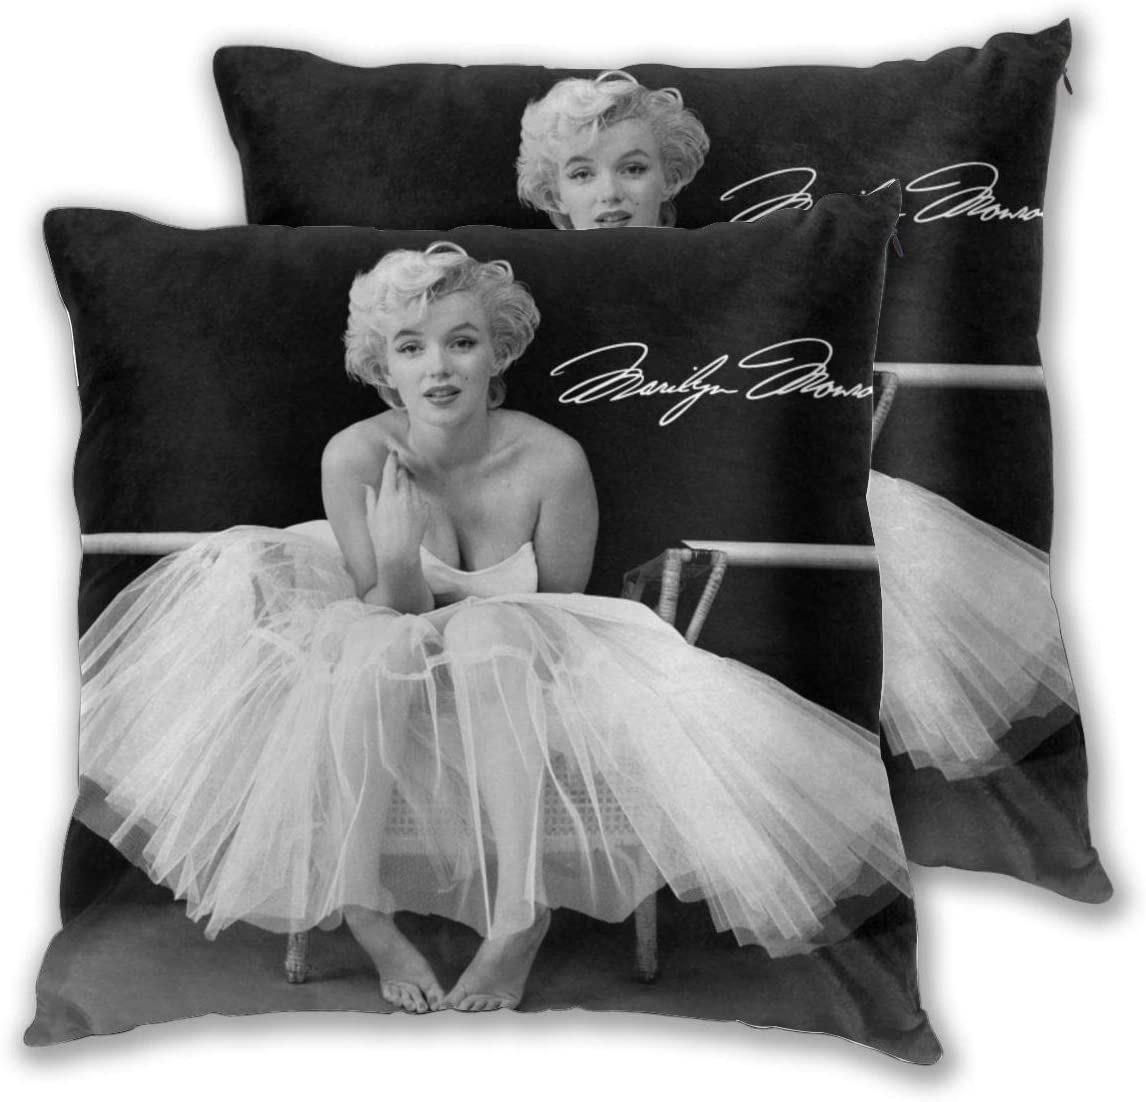 Marilyn Monroe Throw Pillow Cover, 2-Pack Square Pillowcases, Cushion Cover for Sofa Bed Chair 18x18inch(45x45cm)